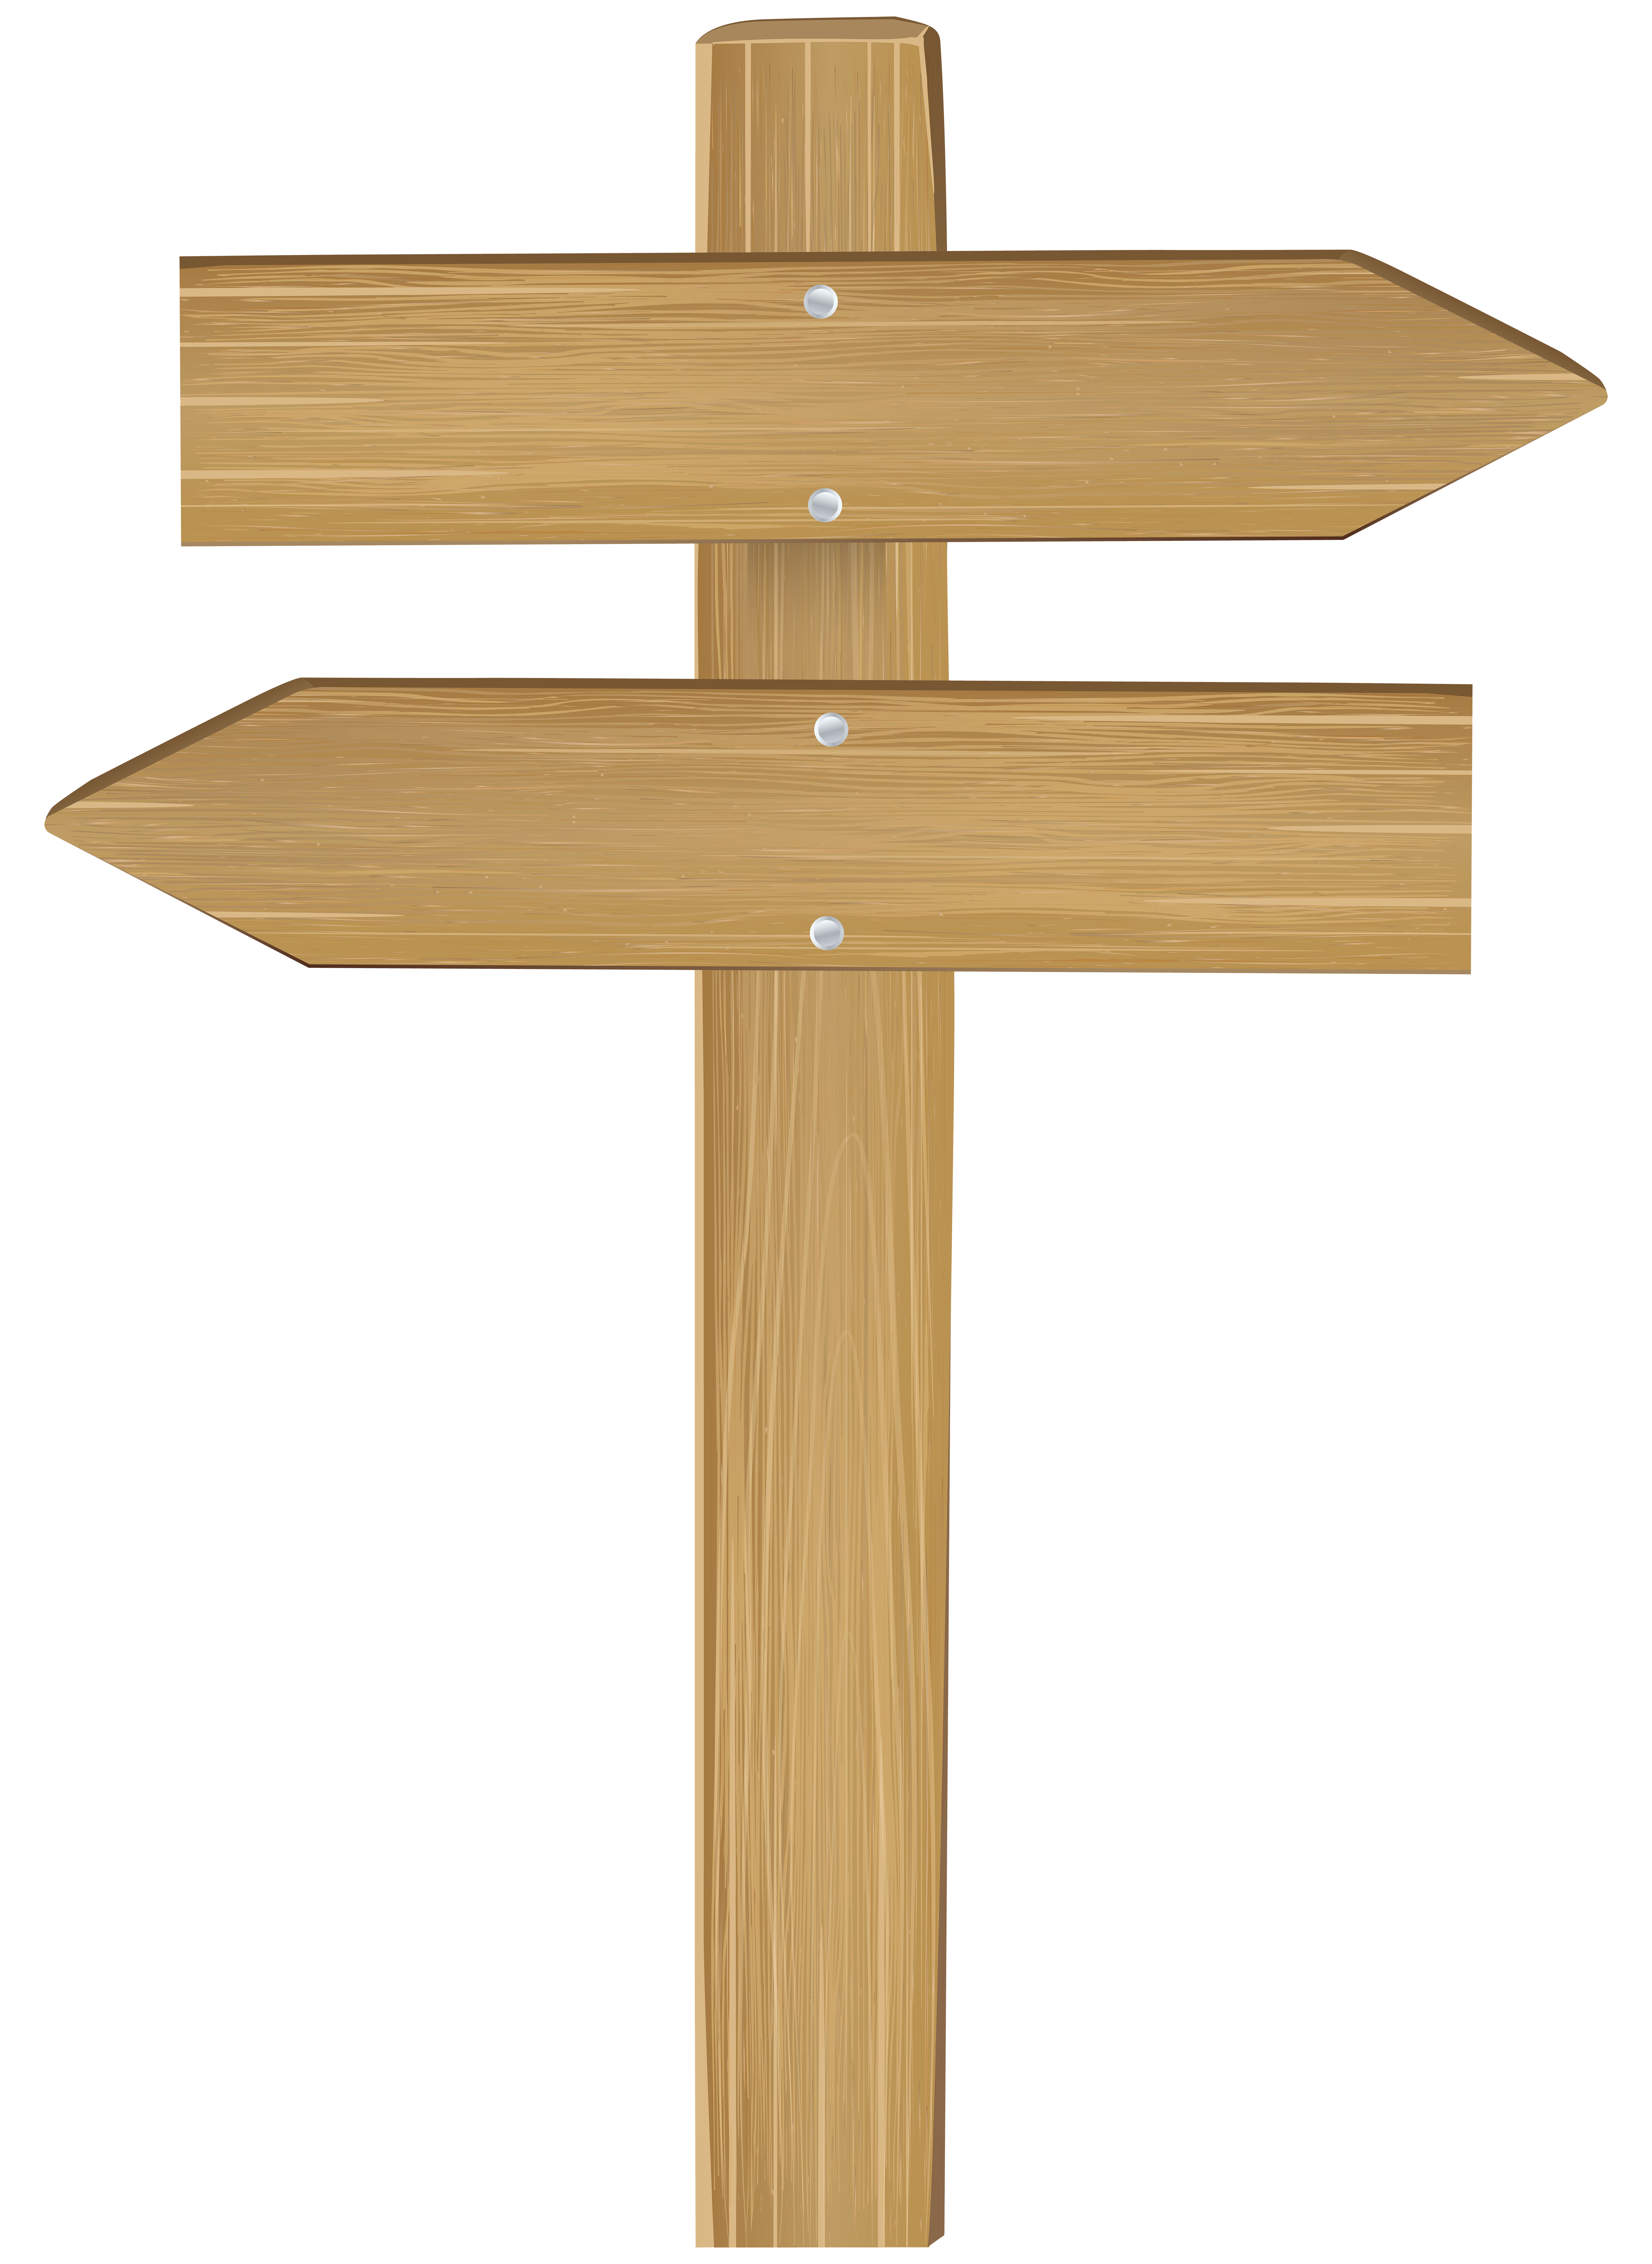 png royalty free stock Wooden arrow sign clipart. Double png clip art